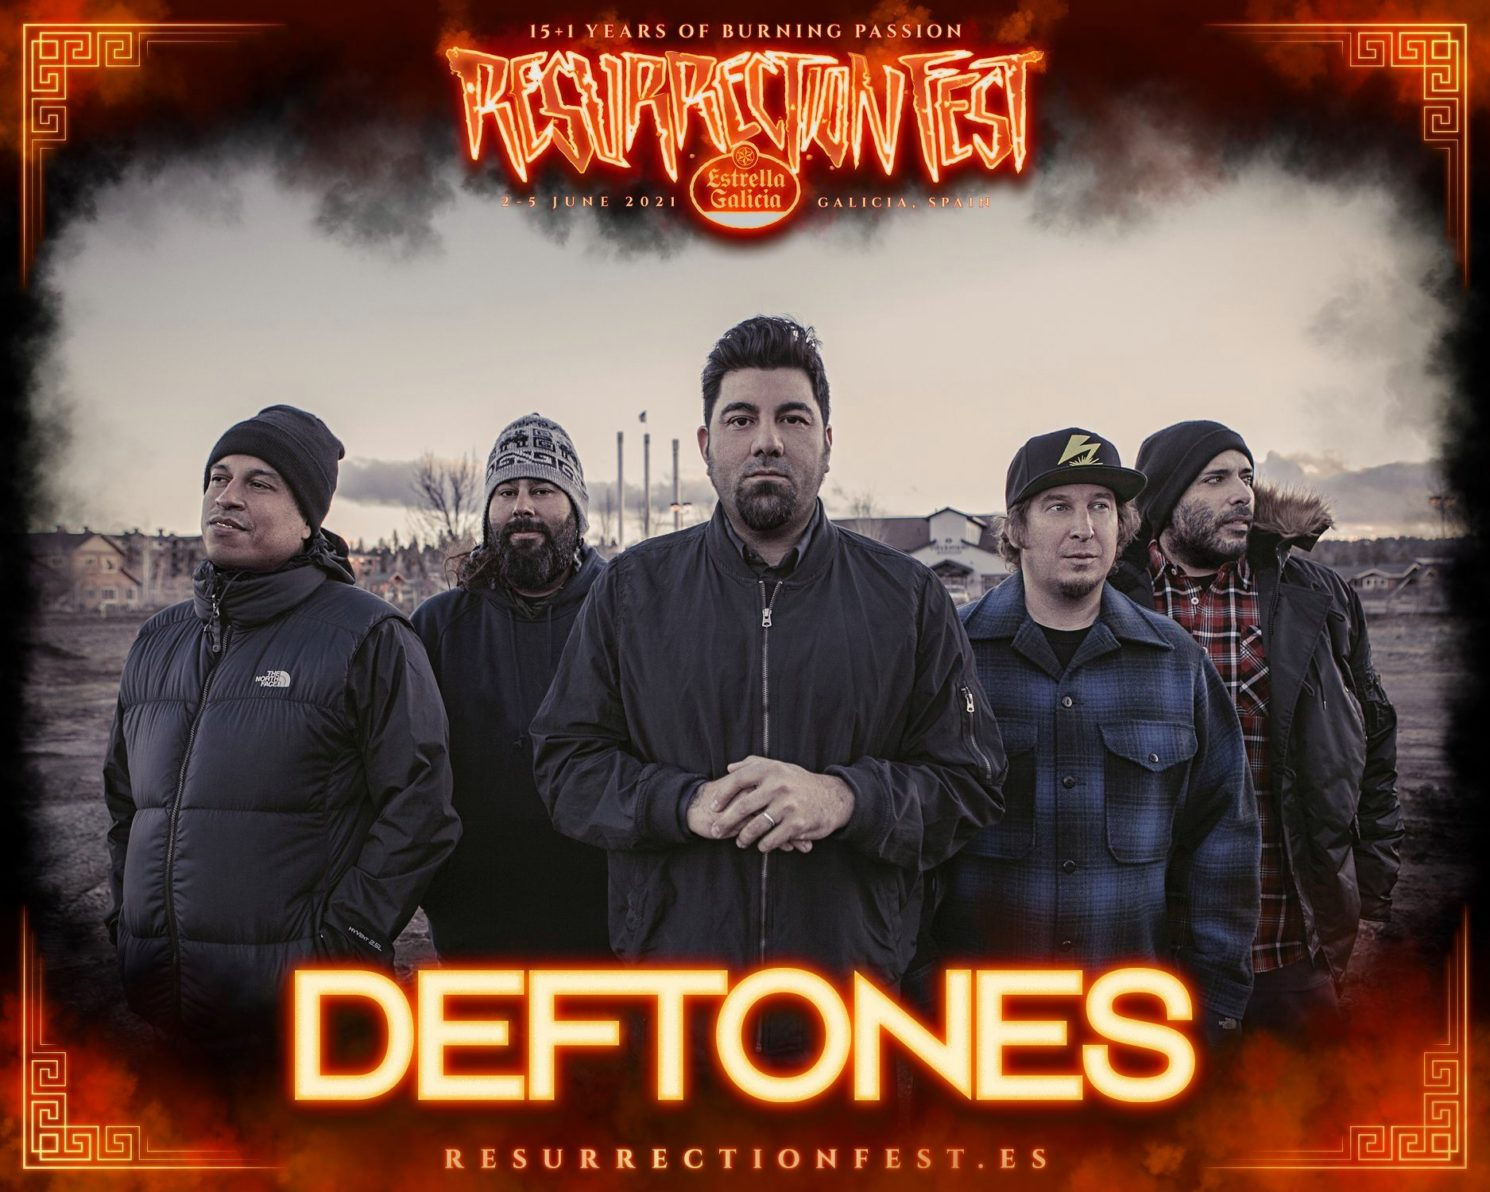 Deftones Cartel Resurrection Fest 2021